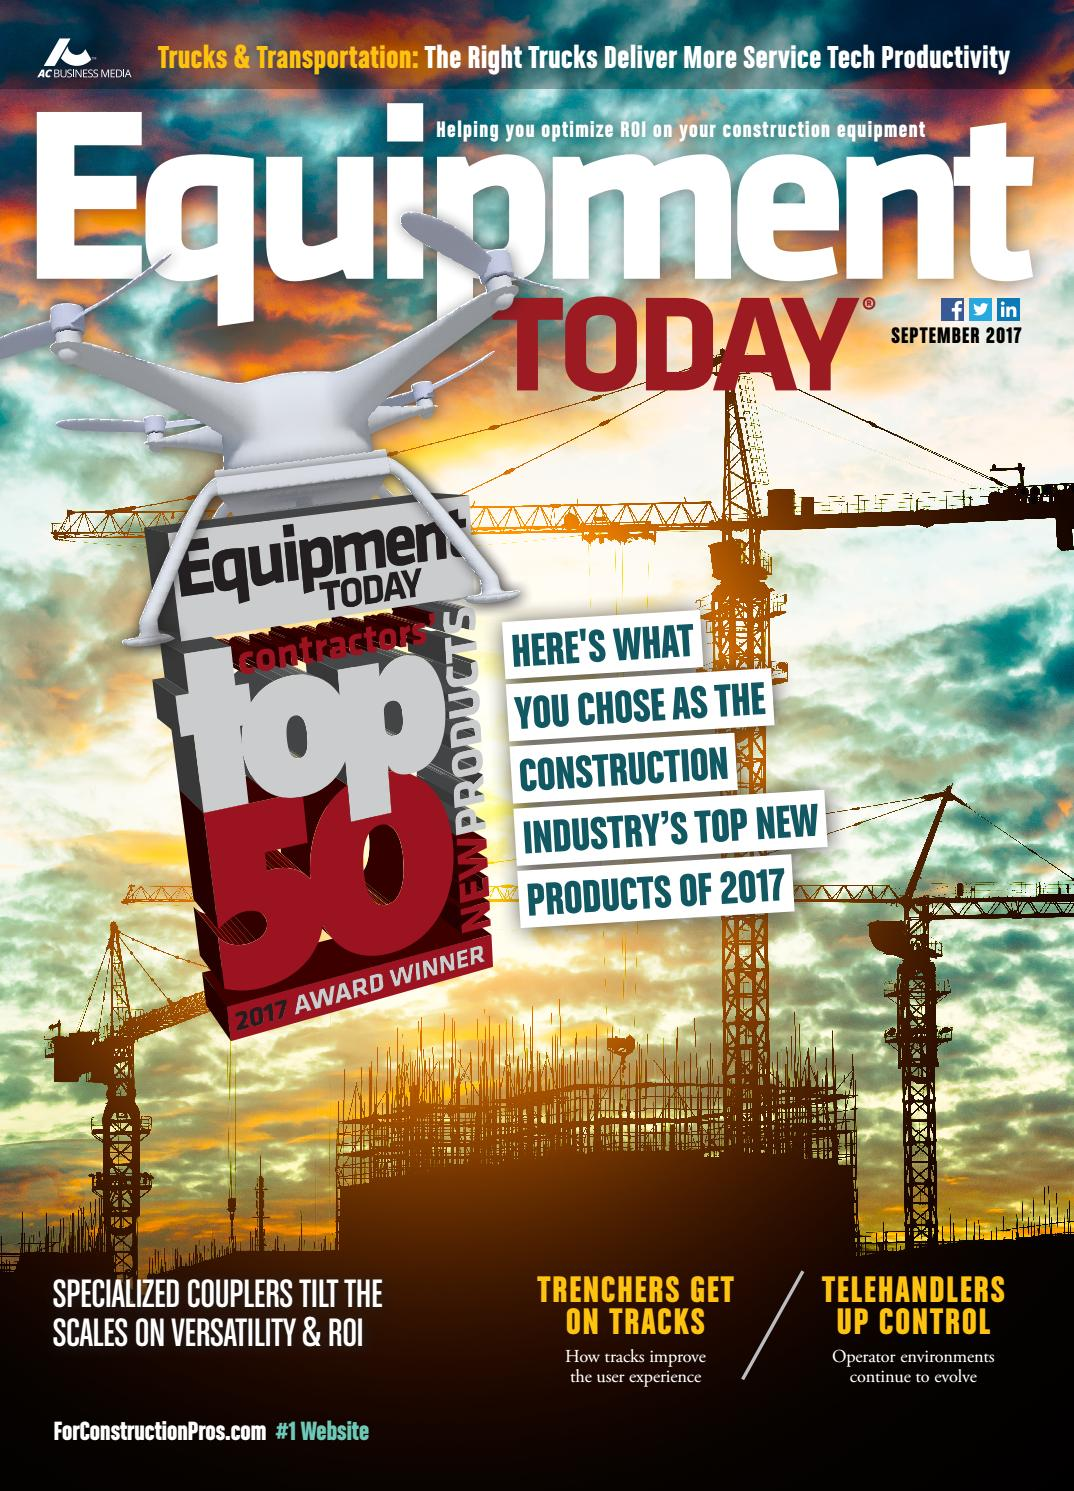 Equipment Today September 2017 By Forconstructionproscom Issuu Alliance Hd 73 Antenna Rotor With Control 2 Sets Of